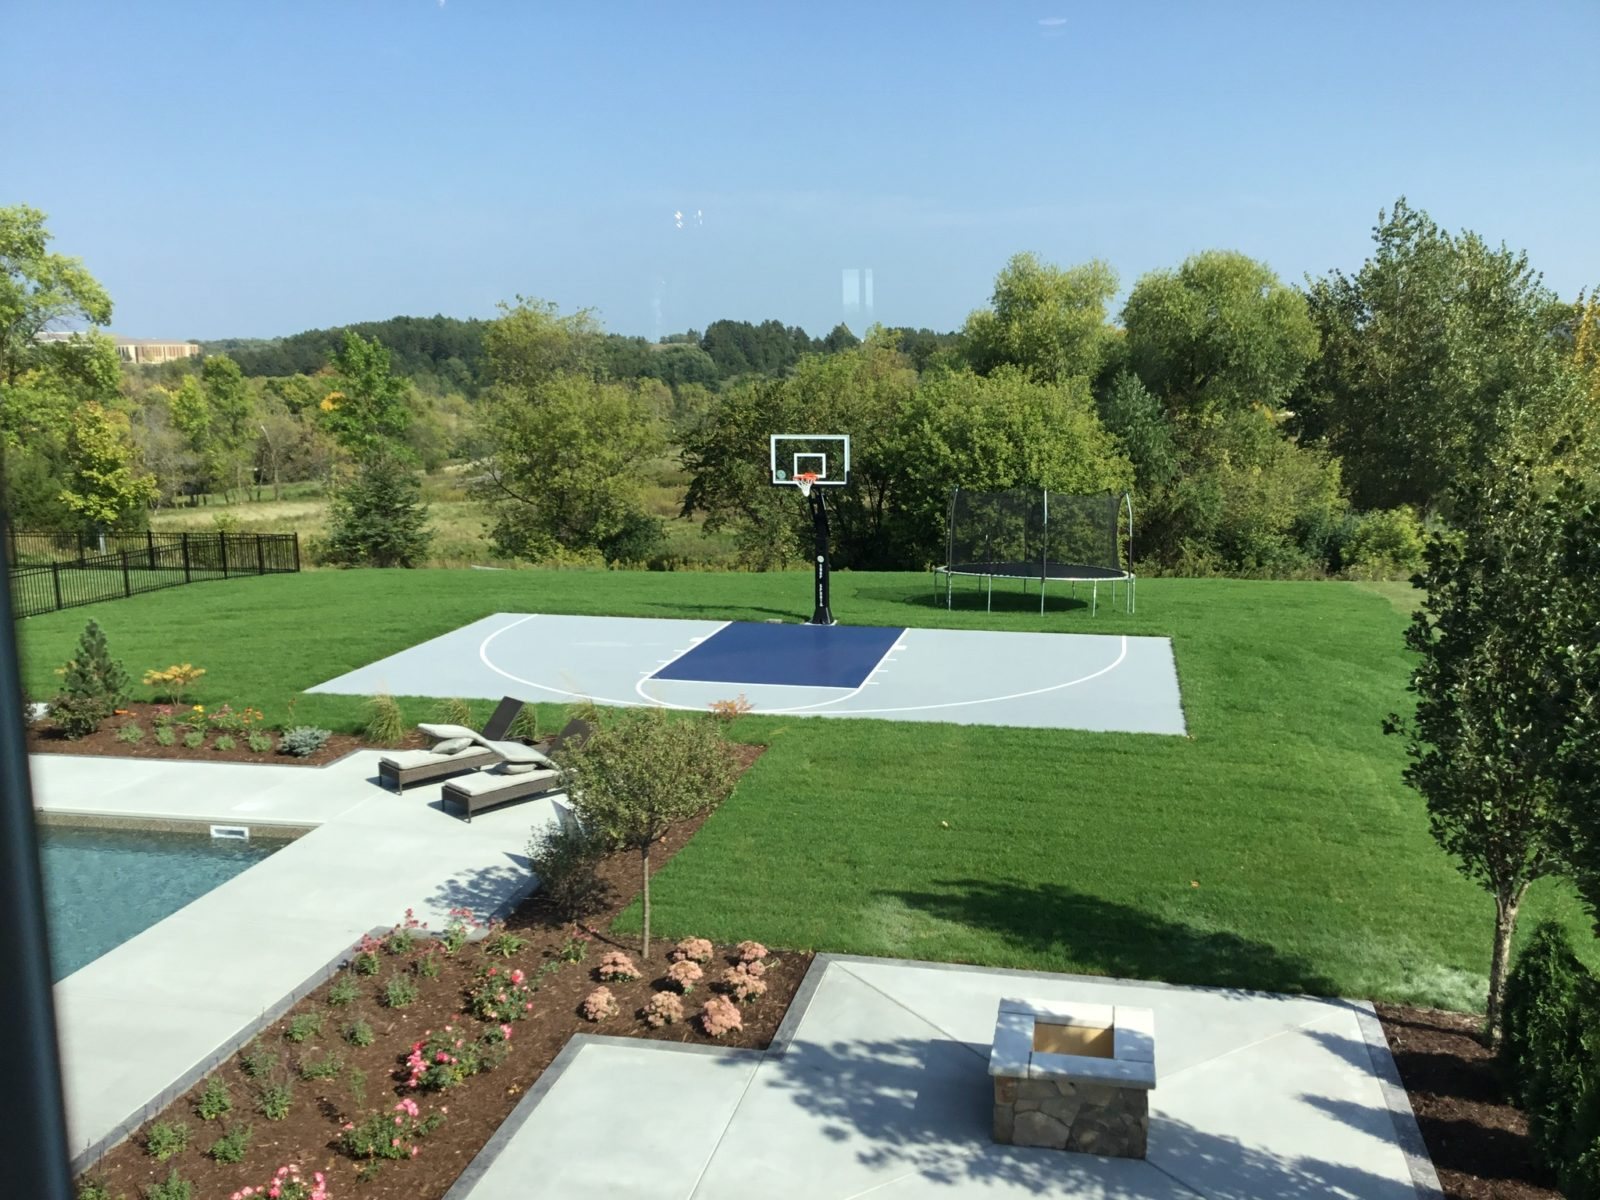 Outdoor Basketball Courts | Game Courts | Millz House | SnapSports on interior design, look4design home design, modern home design, furniture design, tumblr home design, 3d home design, martha stewart home design, house design, wallpaper home design, black home design, kerala home design, home office design, traditional master bedroom design, small master bedroom design, bathroom design, home freshome design, minimalist home design, kitchen design, green home design, architecture home design,